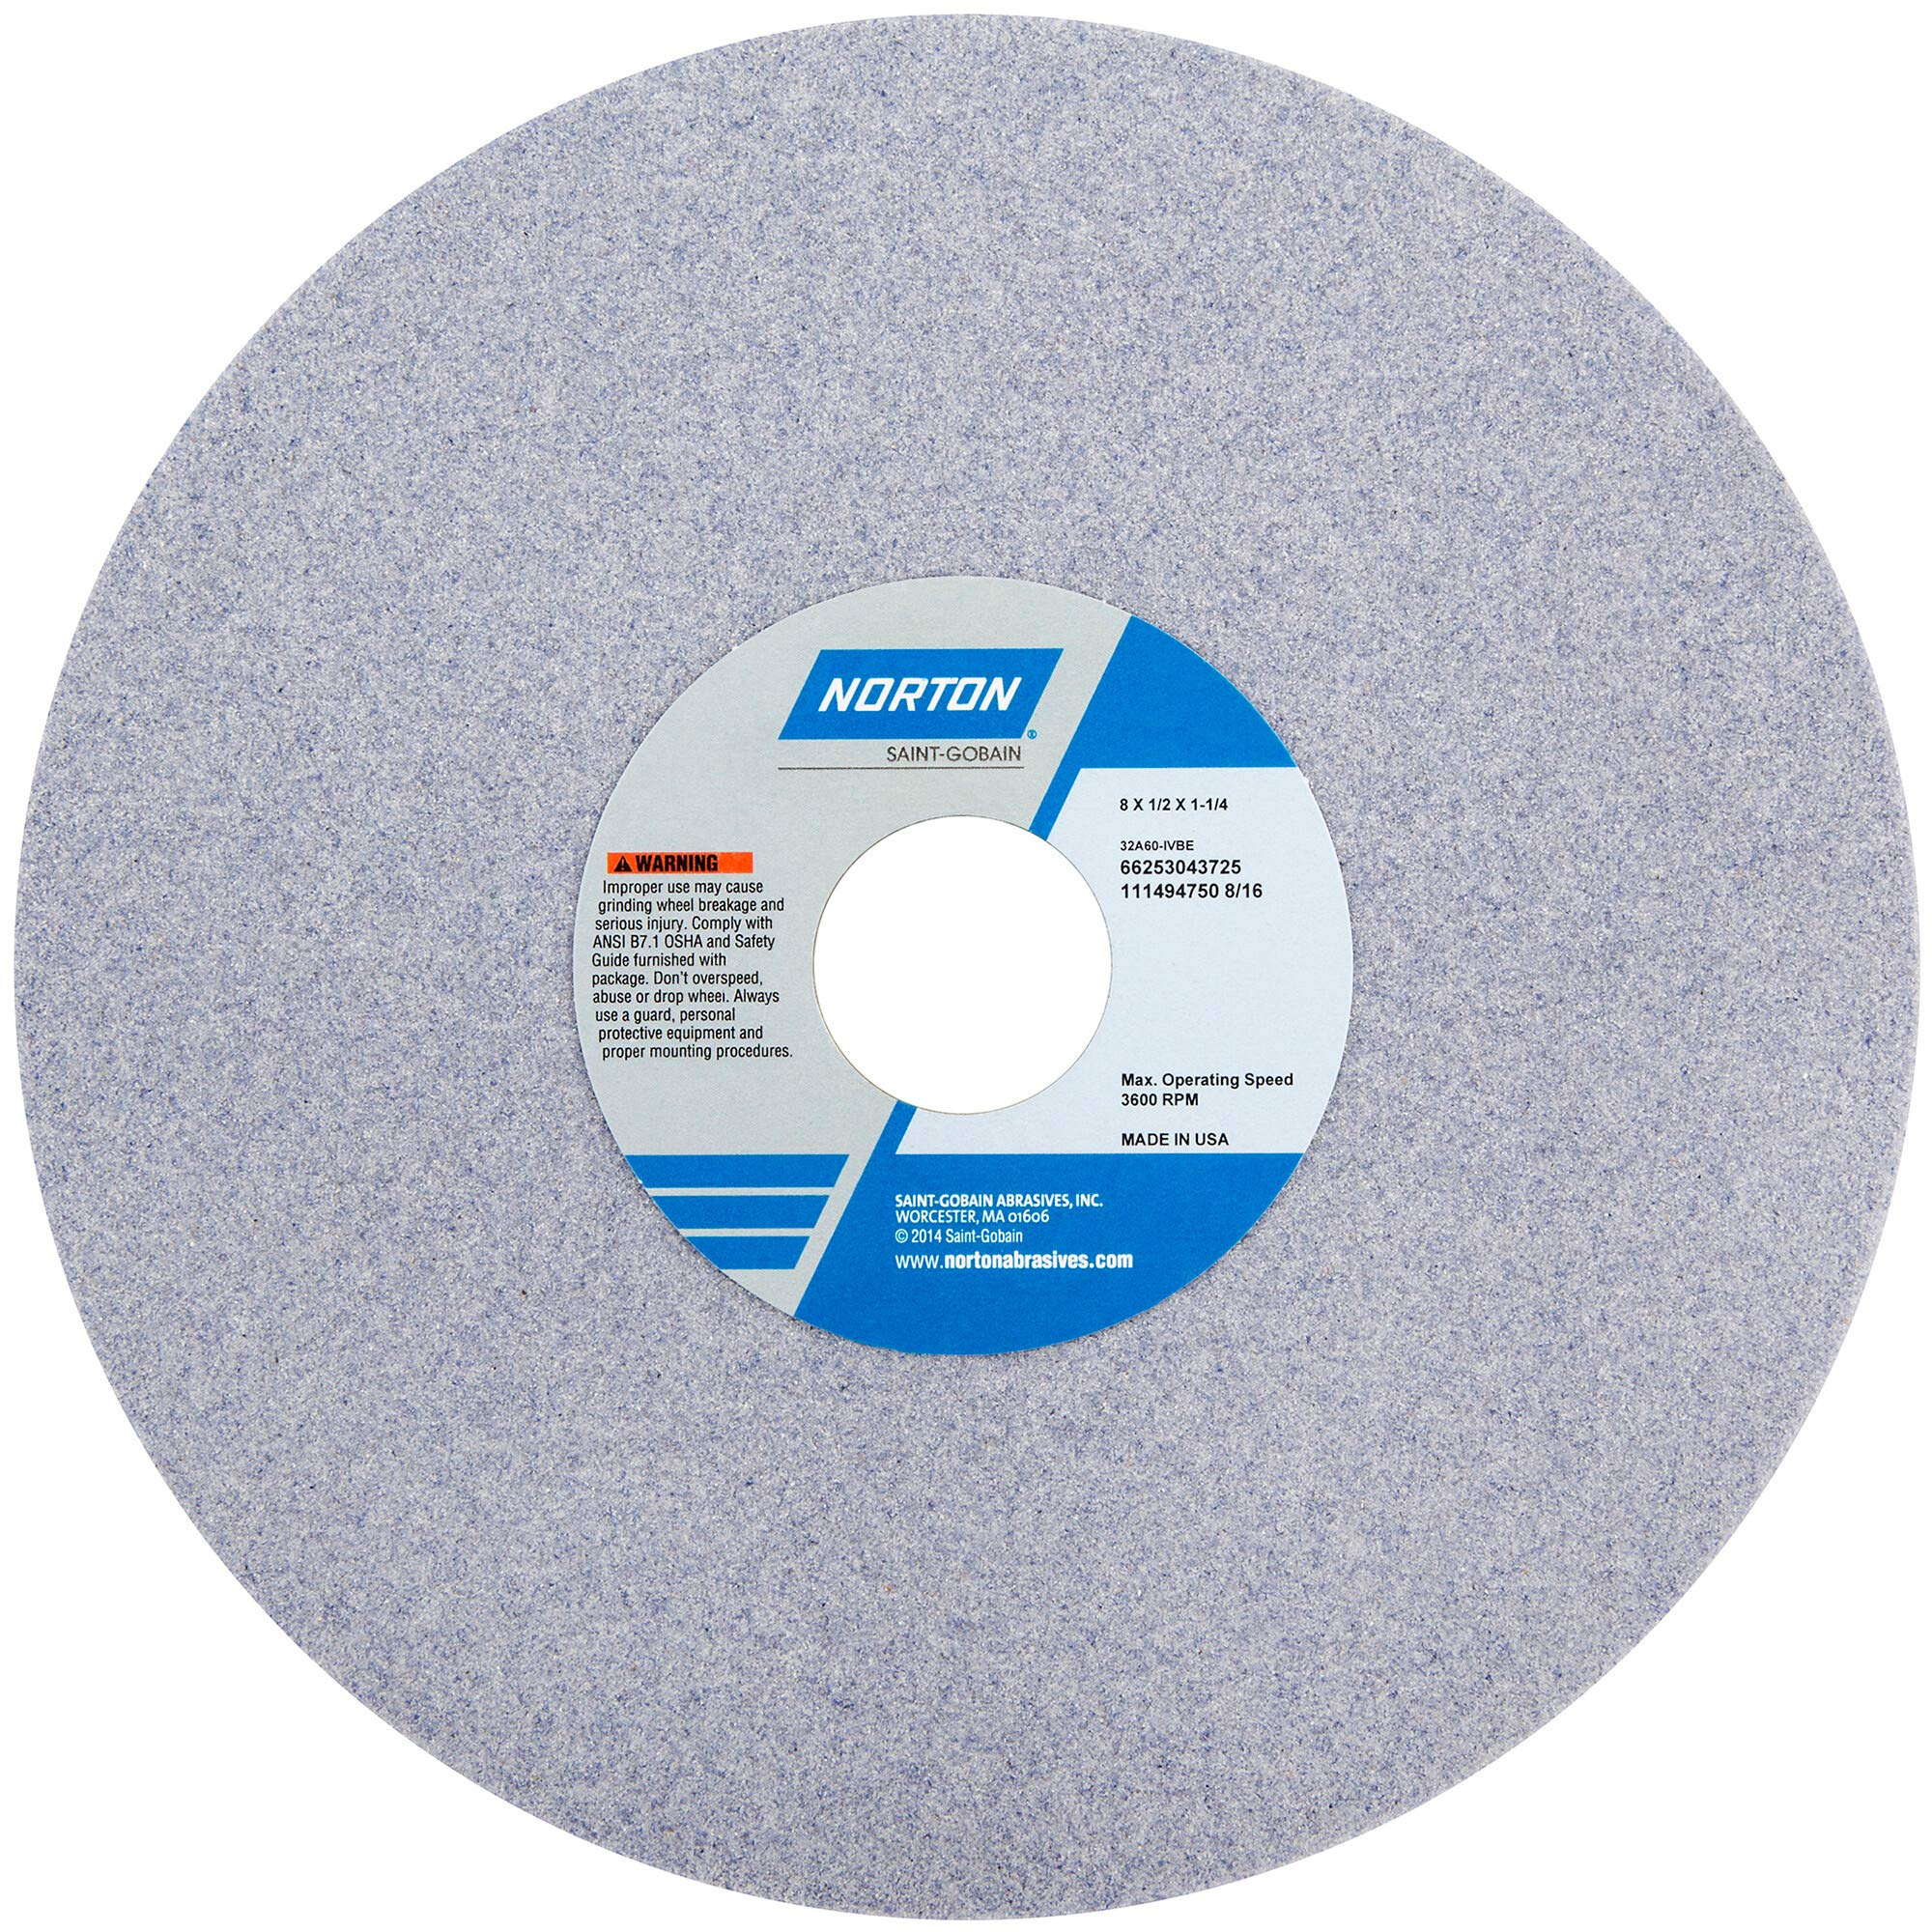 Norton 32A46-HVBE Type 01 Vitrified Straight Toolroom Grinding Wheel, Aluminum Oxide, 8'' Diameter x 1/2'' Width, 1-1/4'' Arbor, 46 Grit, Grade H, Purple (Pack of 1) by Norton Abrasives - St. Gobain